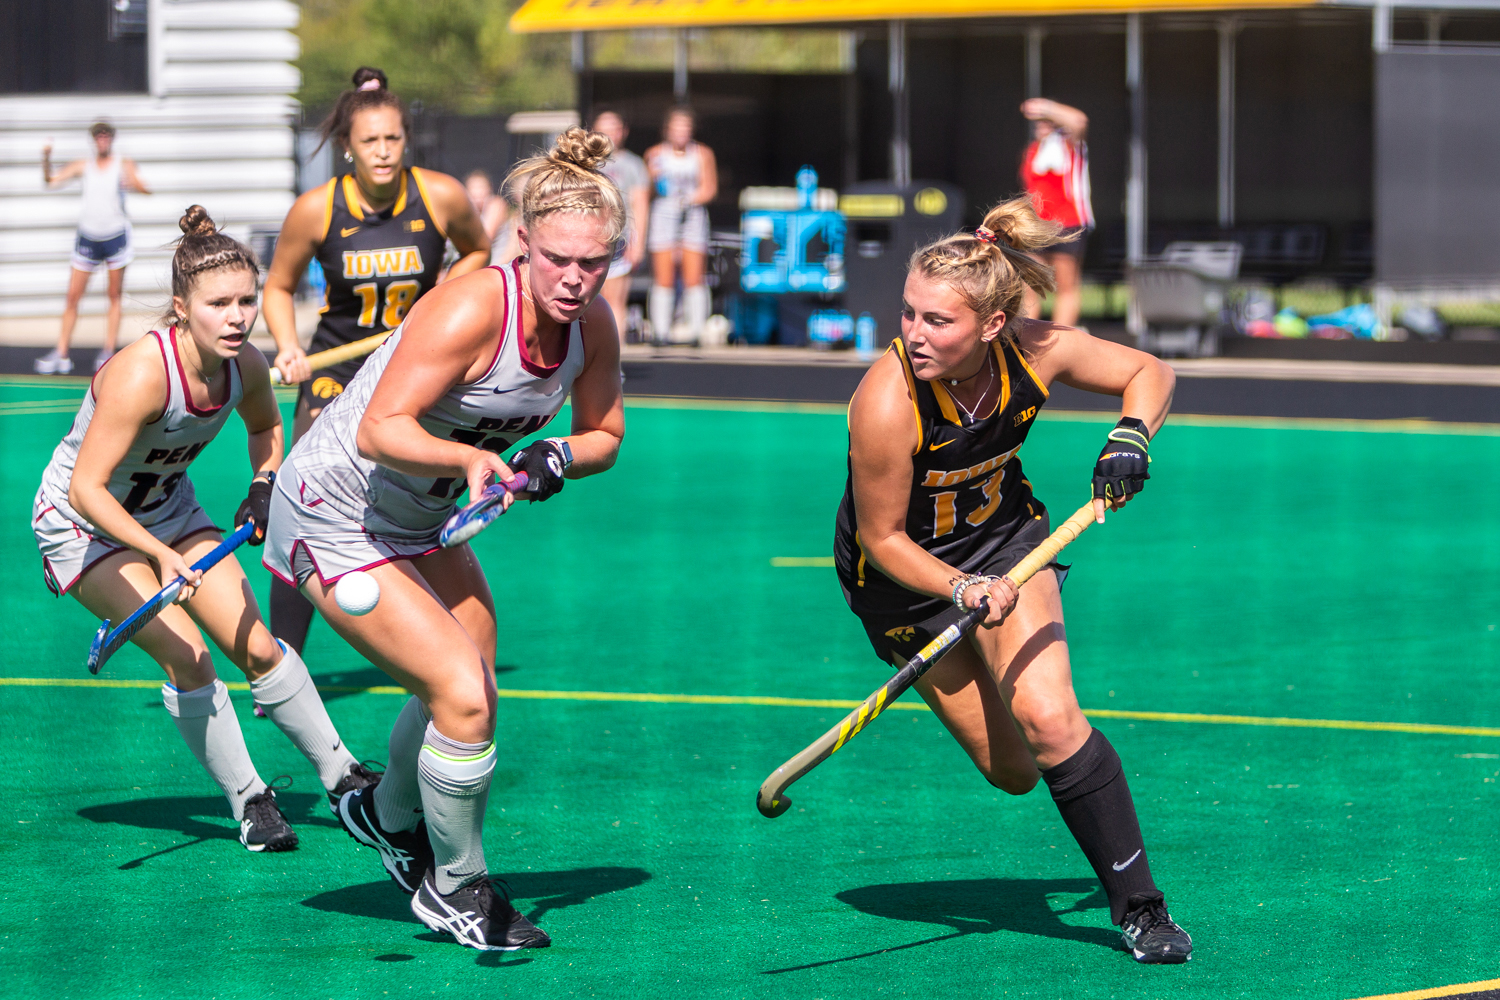 Iowa forward Leah Zellner fights for control of the ball during a field hockey match against Penn on Friday, Sept. 14, 2018. The Hawkeyes defeated the Quakers 3–0.